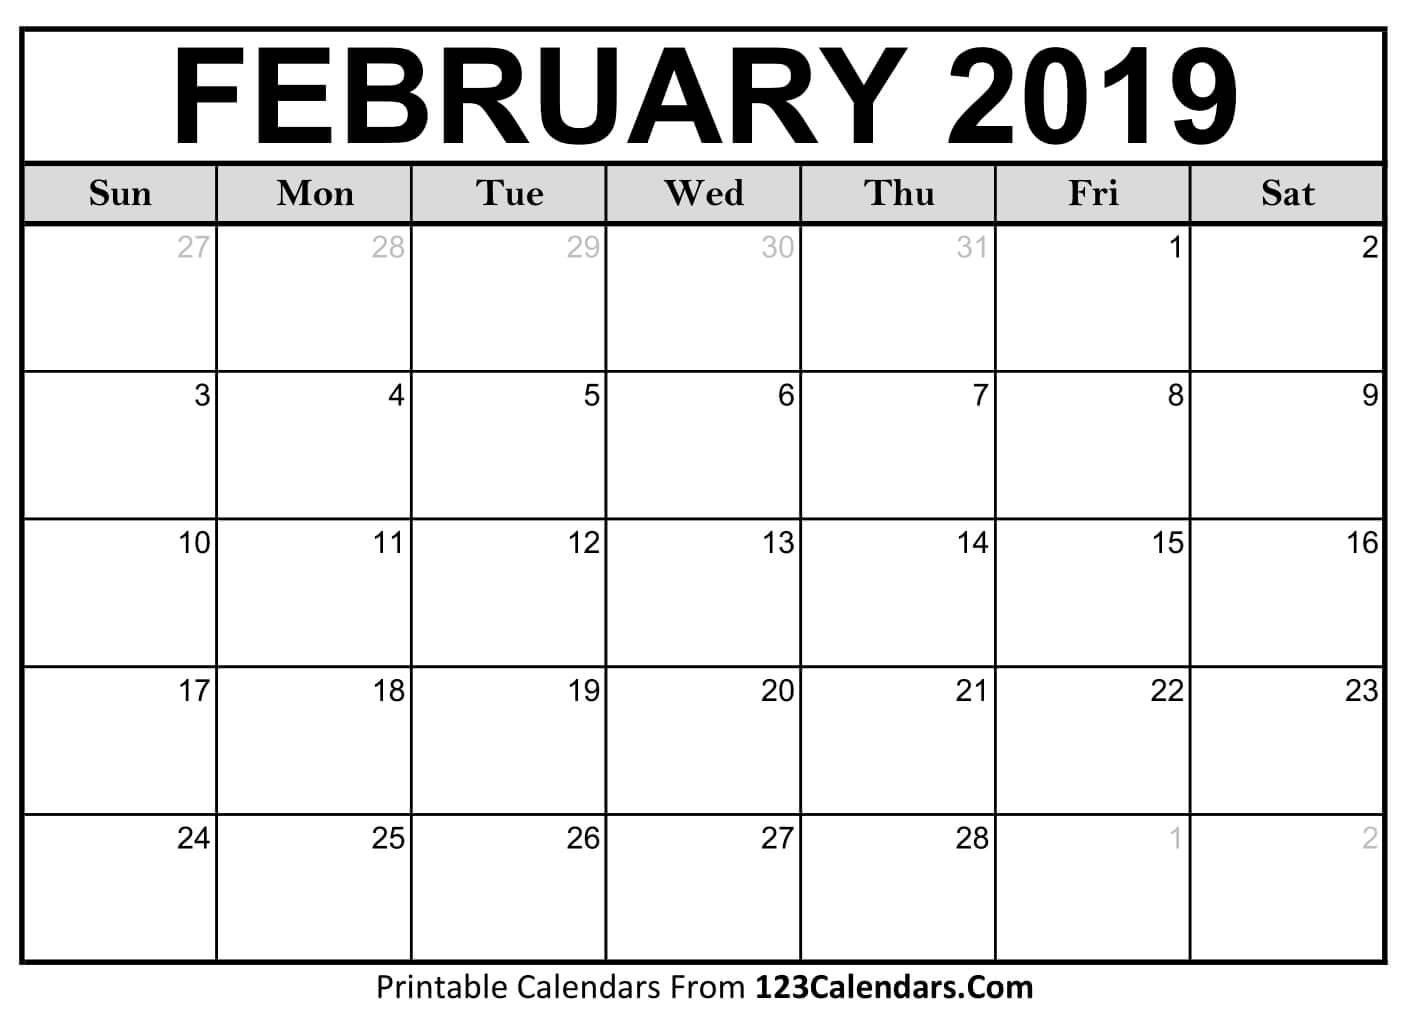 February 2019 Printable Calendar Pdf Free Monthly Template Calendar 3/2019